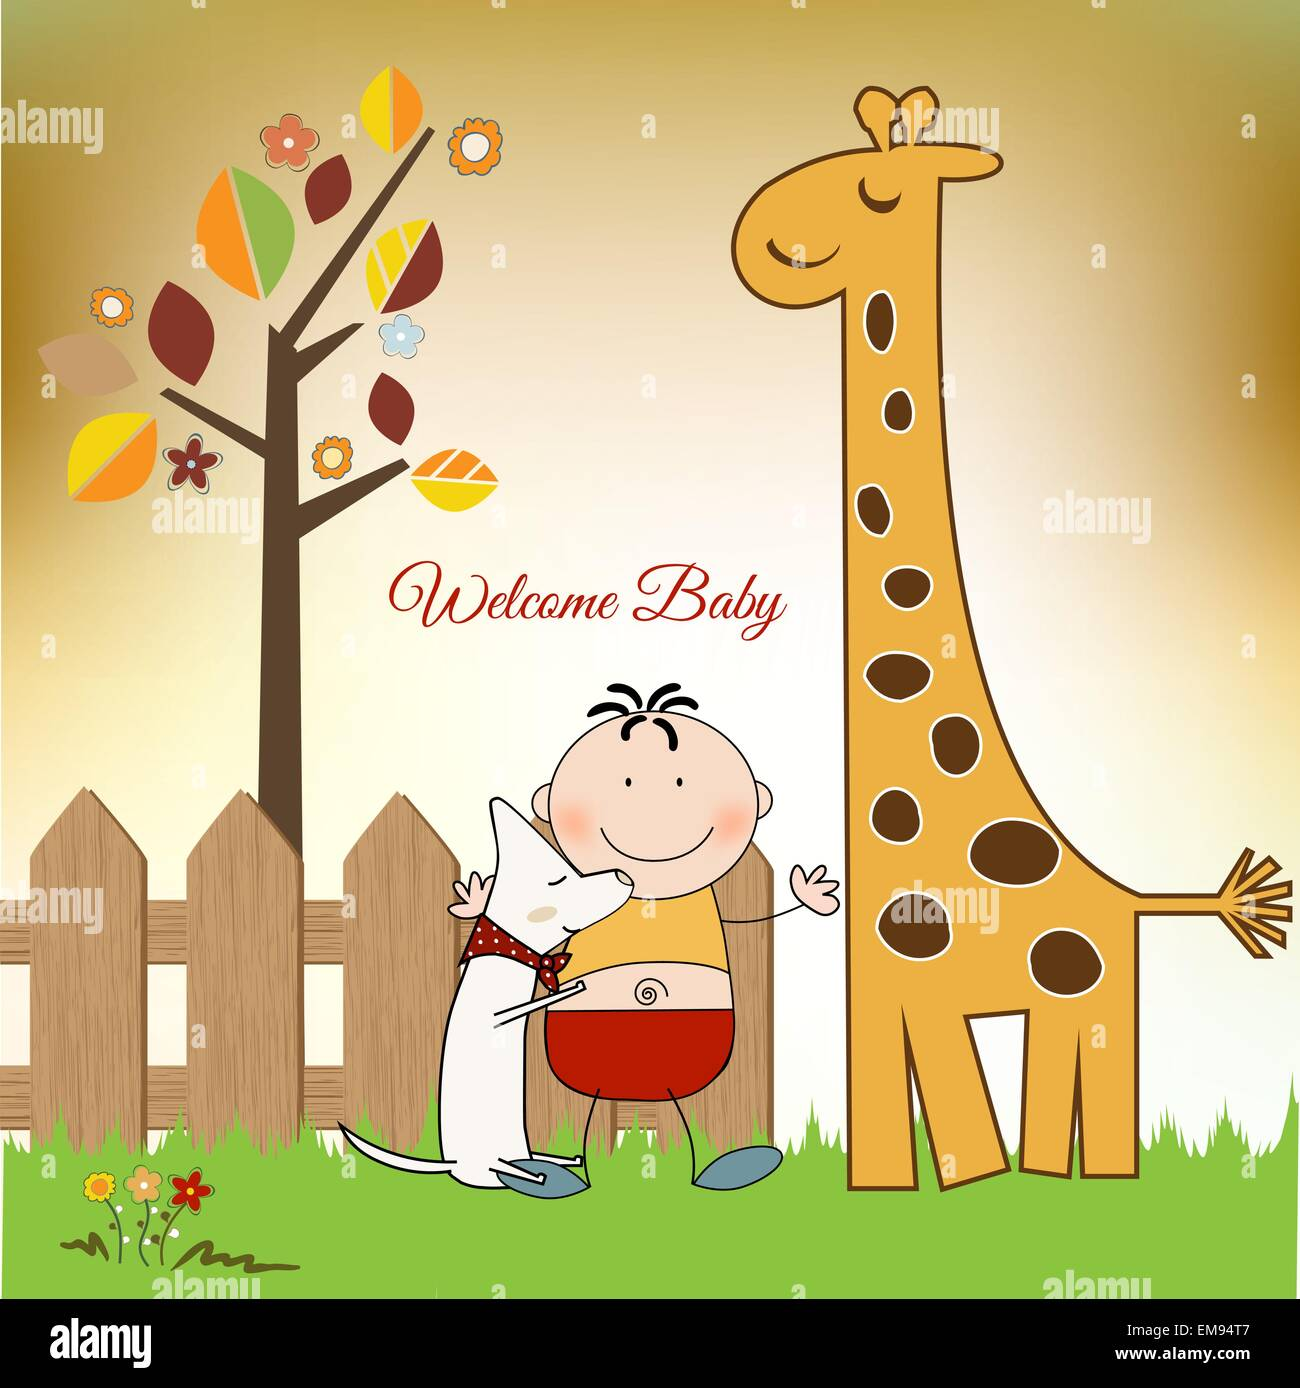 Welcome baby greeting card with giraffe stock vector art welcome baby greeting card with giraffe m4hsunfo